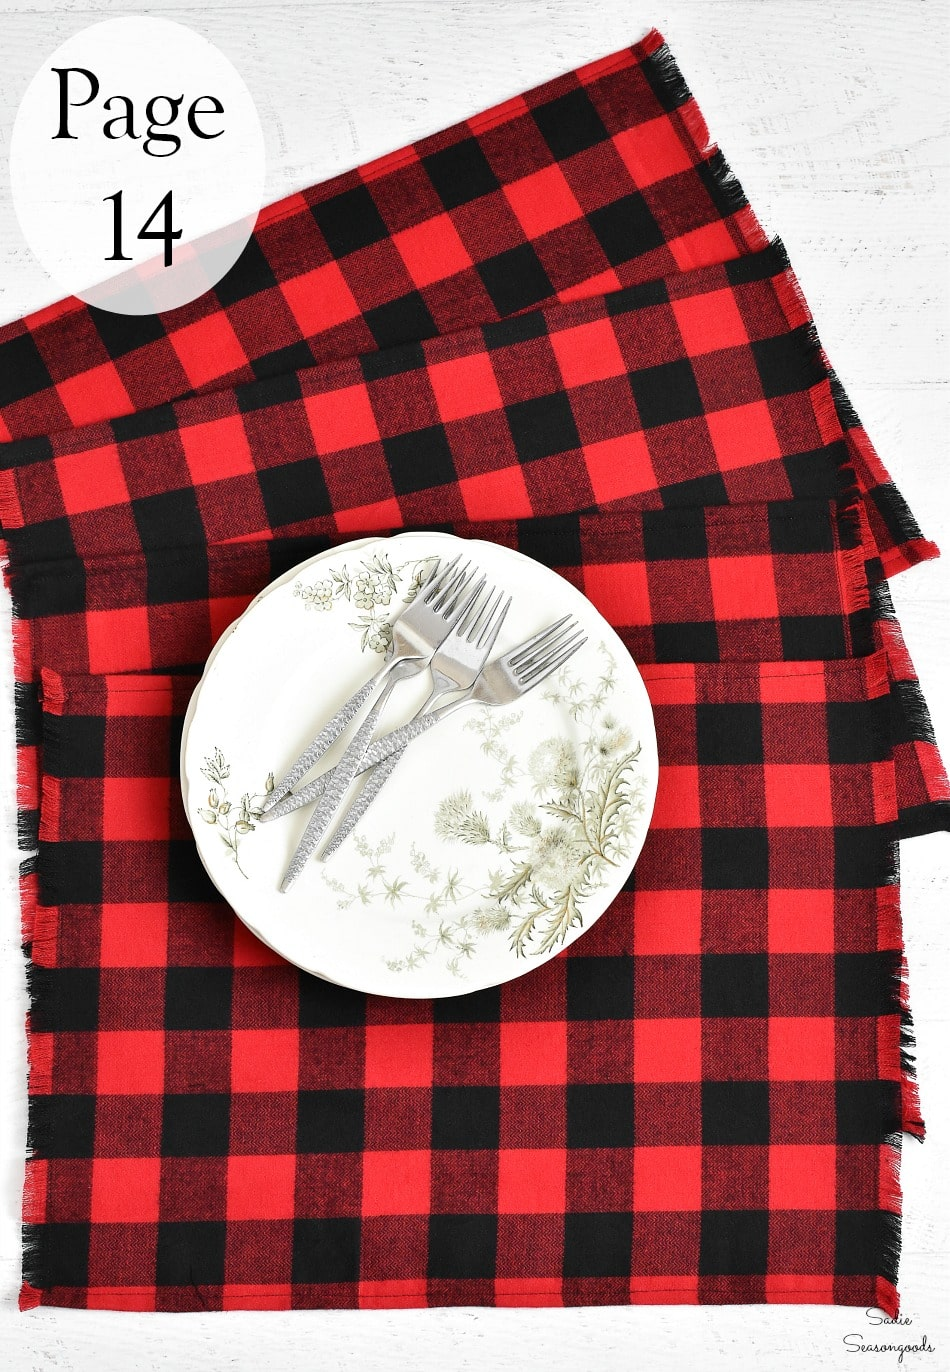 Flannel placemats for a rustic holiday table